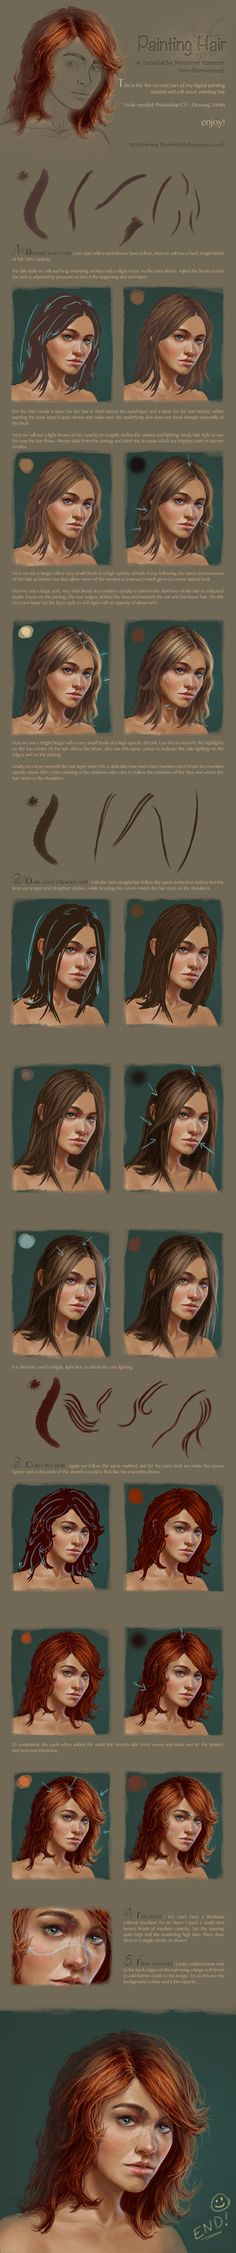 Digital Hair / Portrait Painting Tutorial part 2 by me-illuminated.deviantart.com on @deviantART